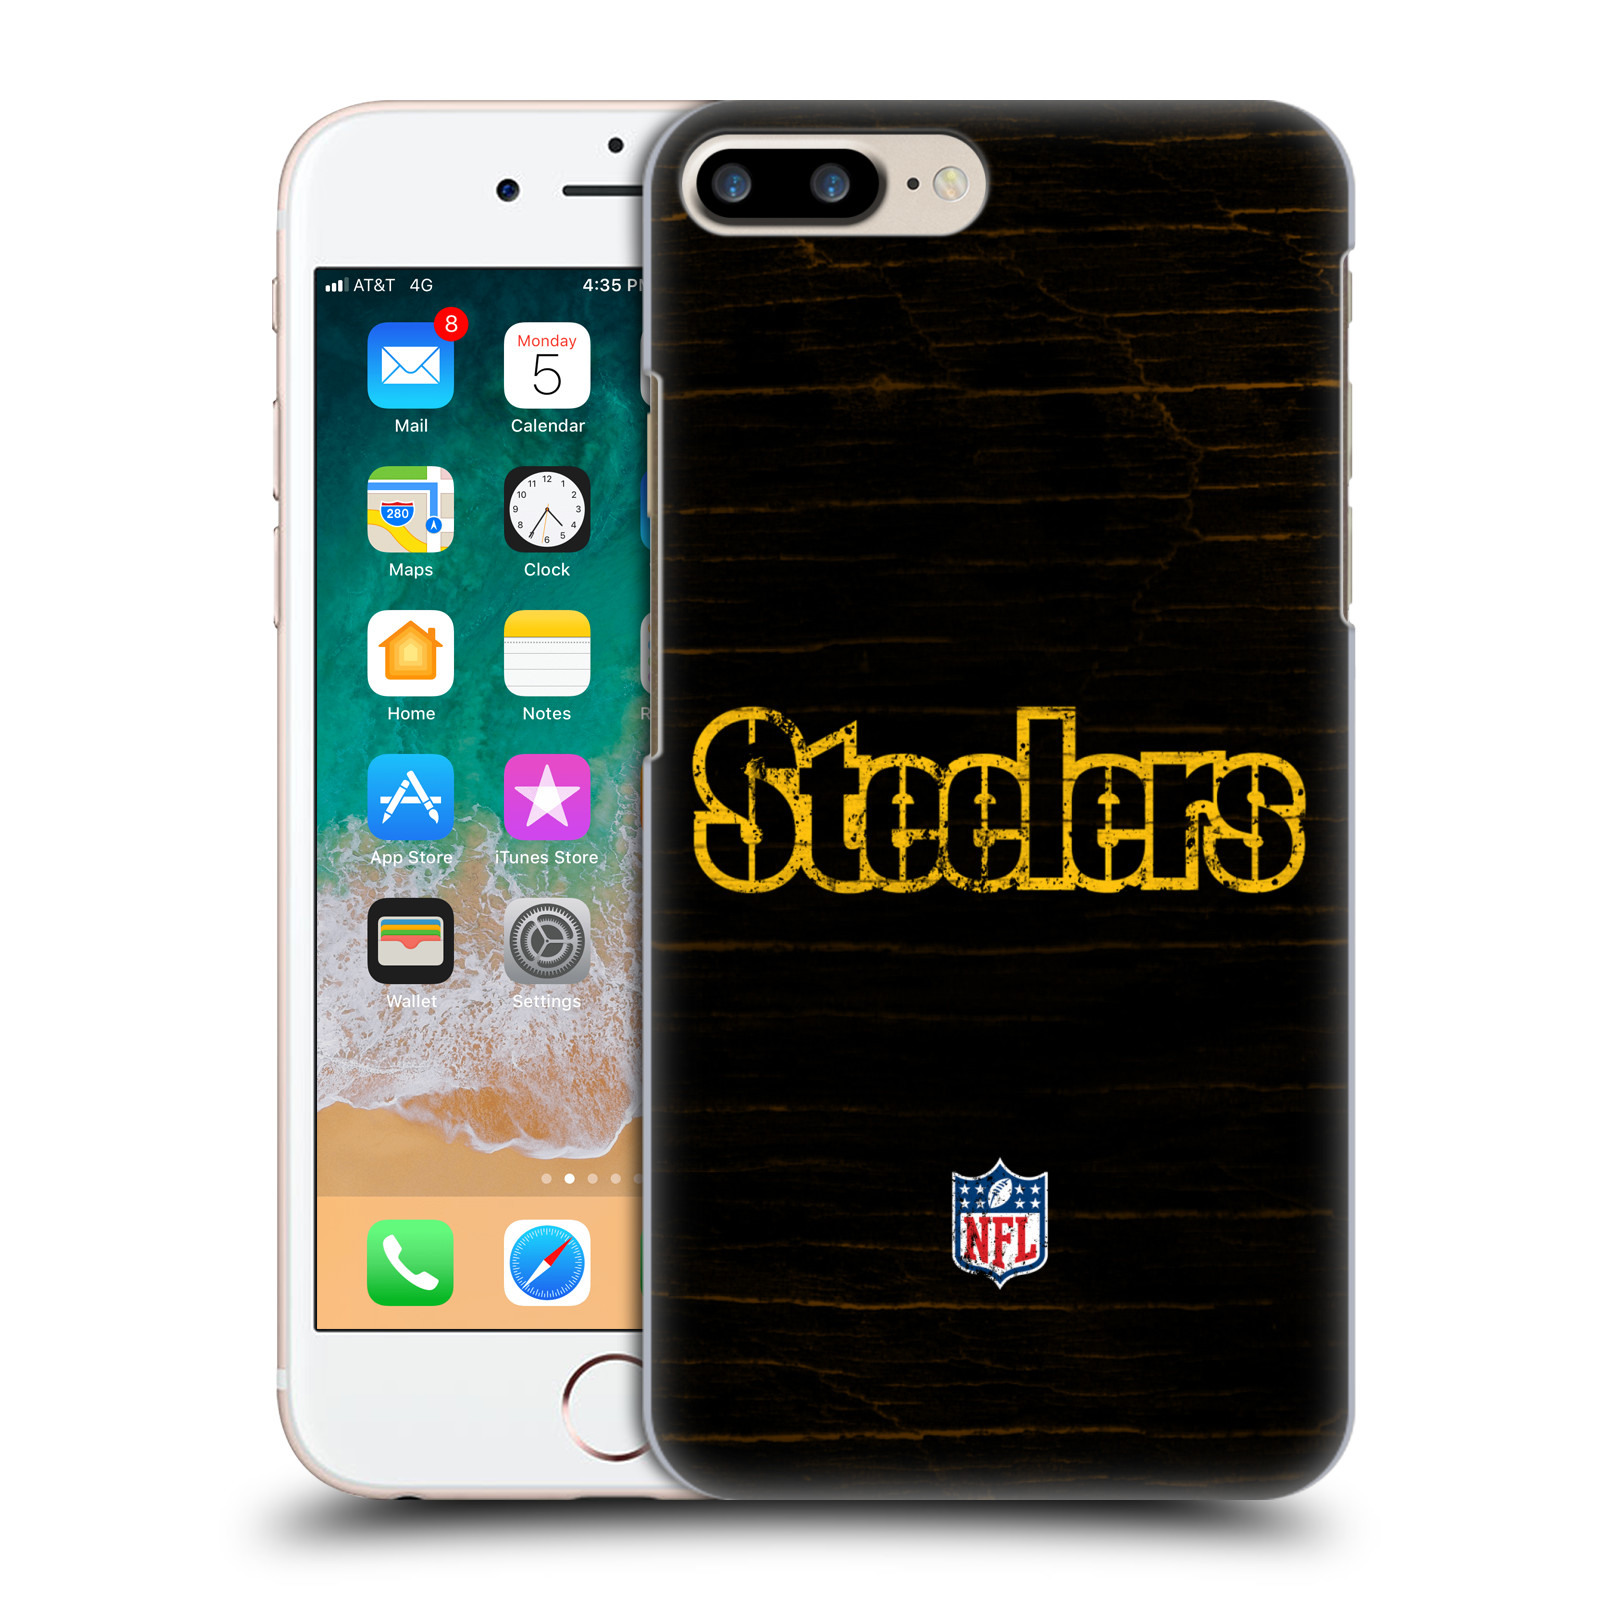 OFFICIAL NFL PITTSBURGH STEELERS LOGO HARD BACK CASE FOR APPLE IPHONE PHONES